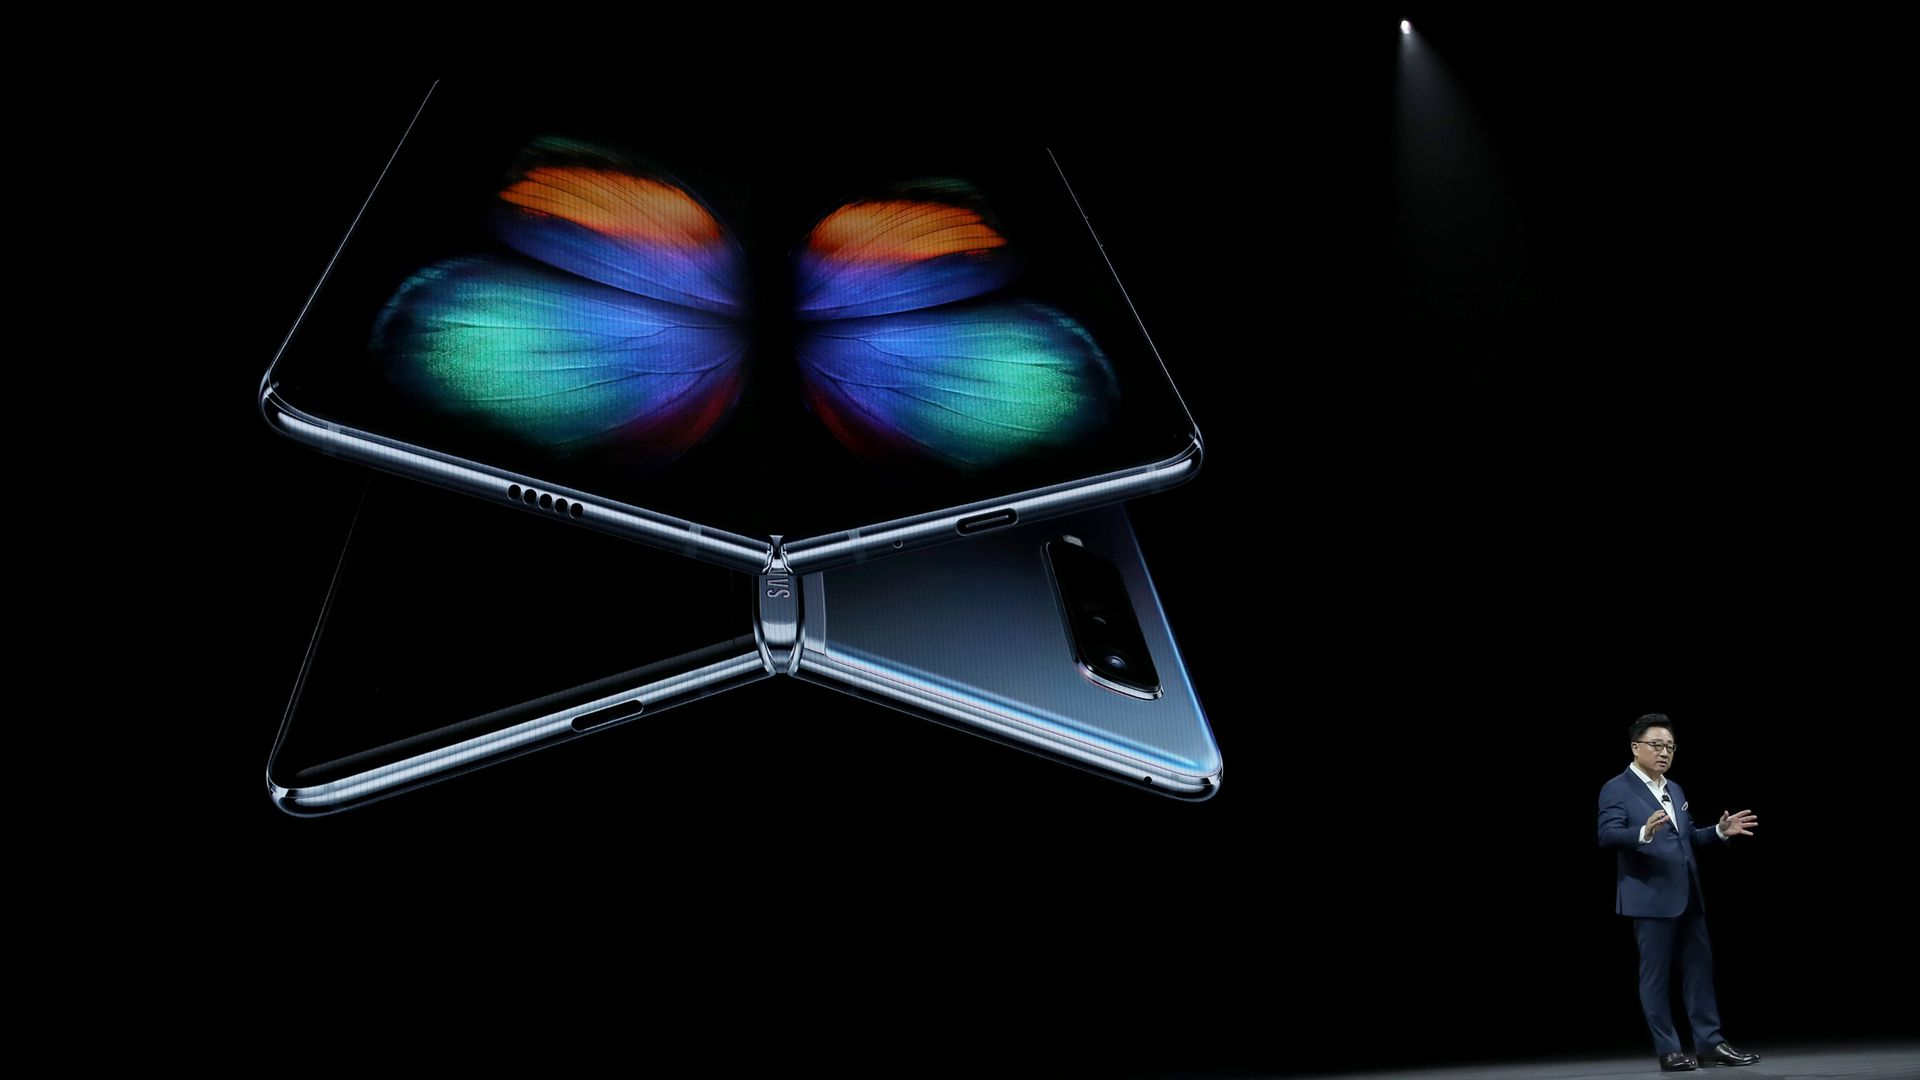 Samsung's DJ Koh shows off the Galaxy Fold at a San Francisco event on Feb. 20, 2019.